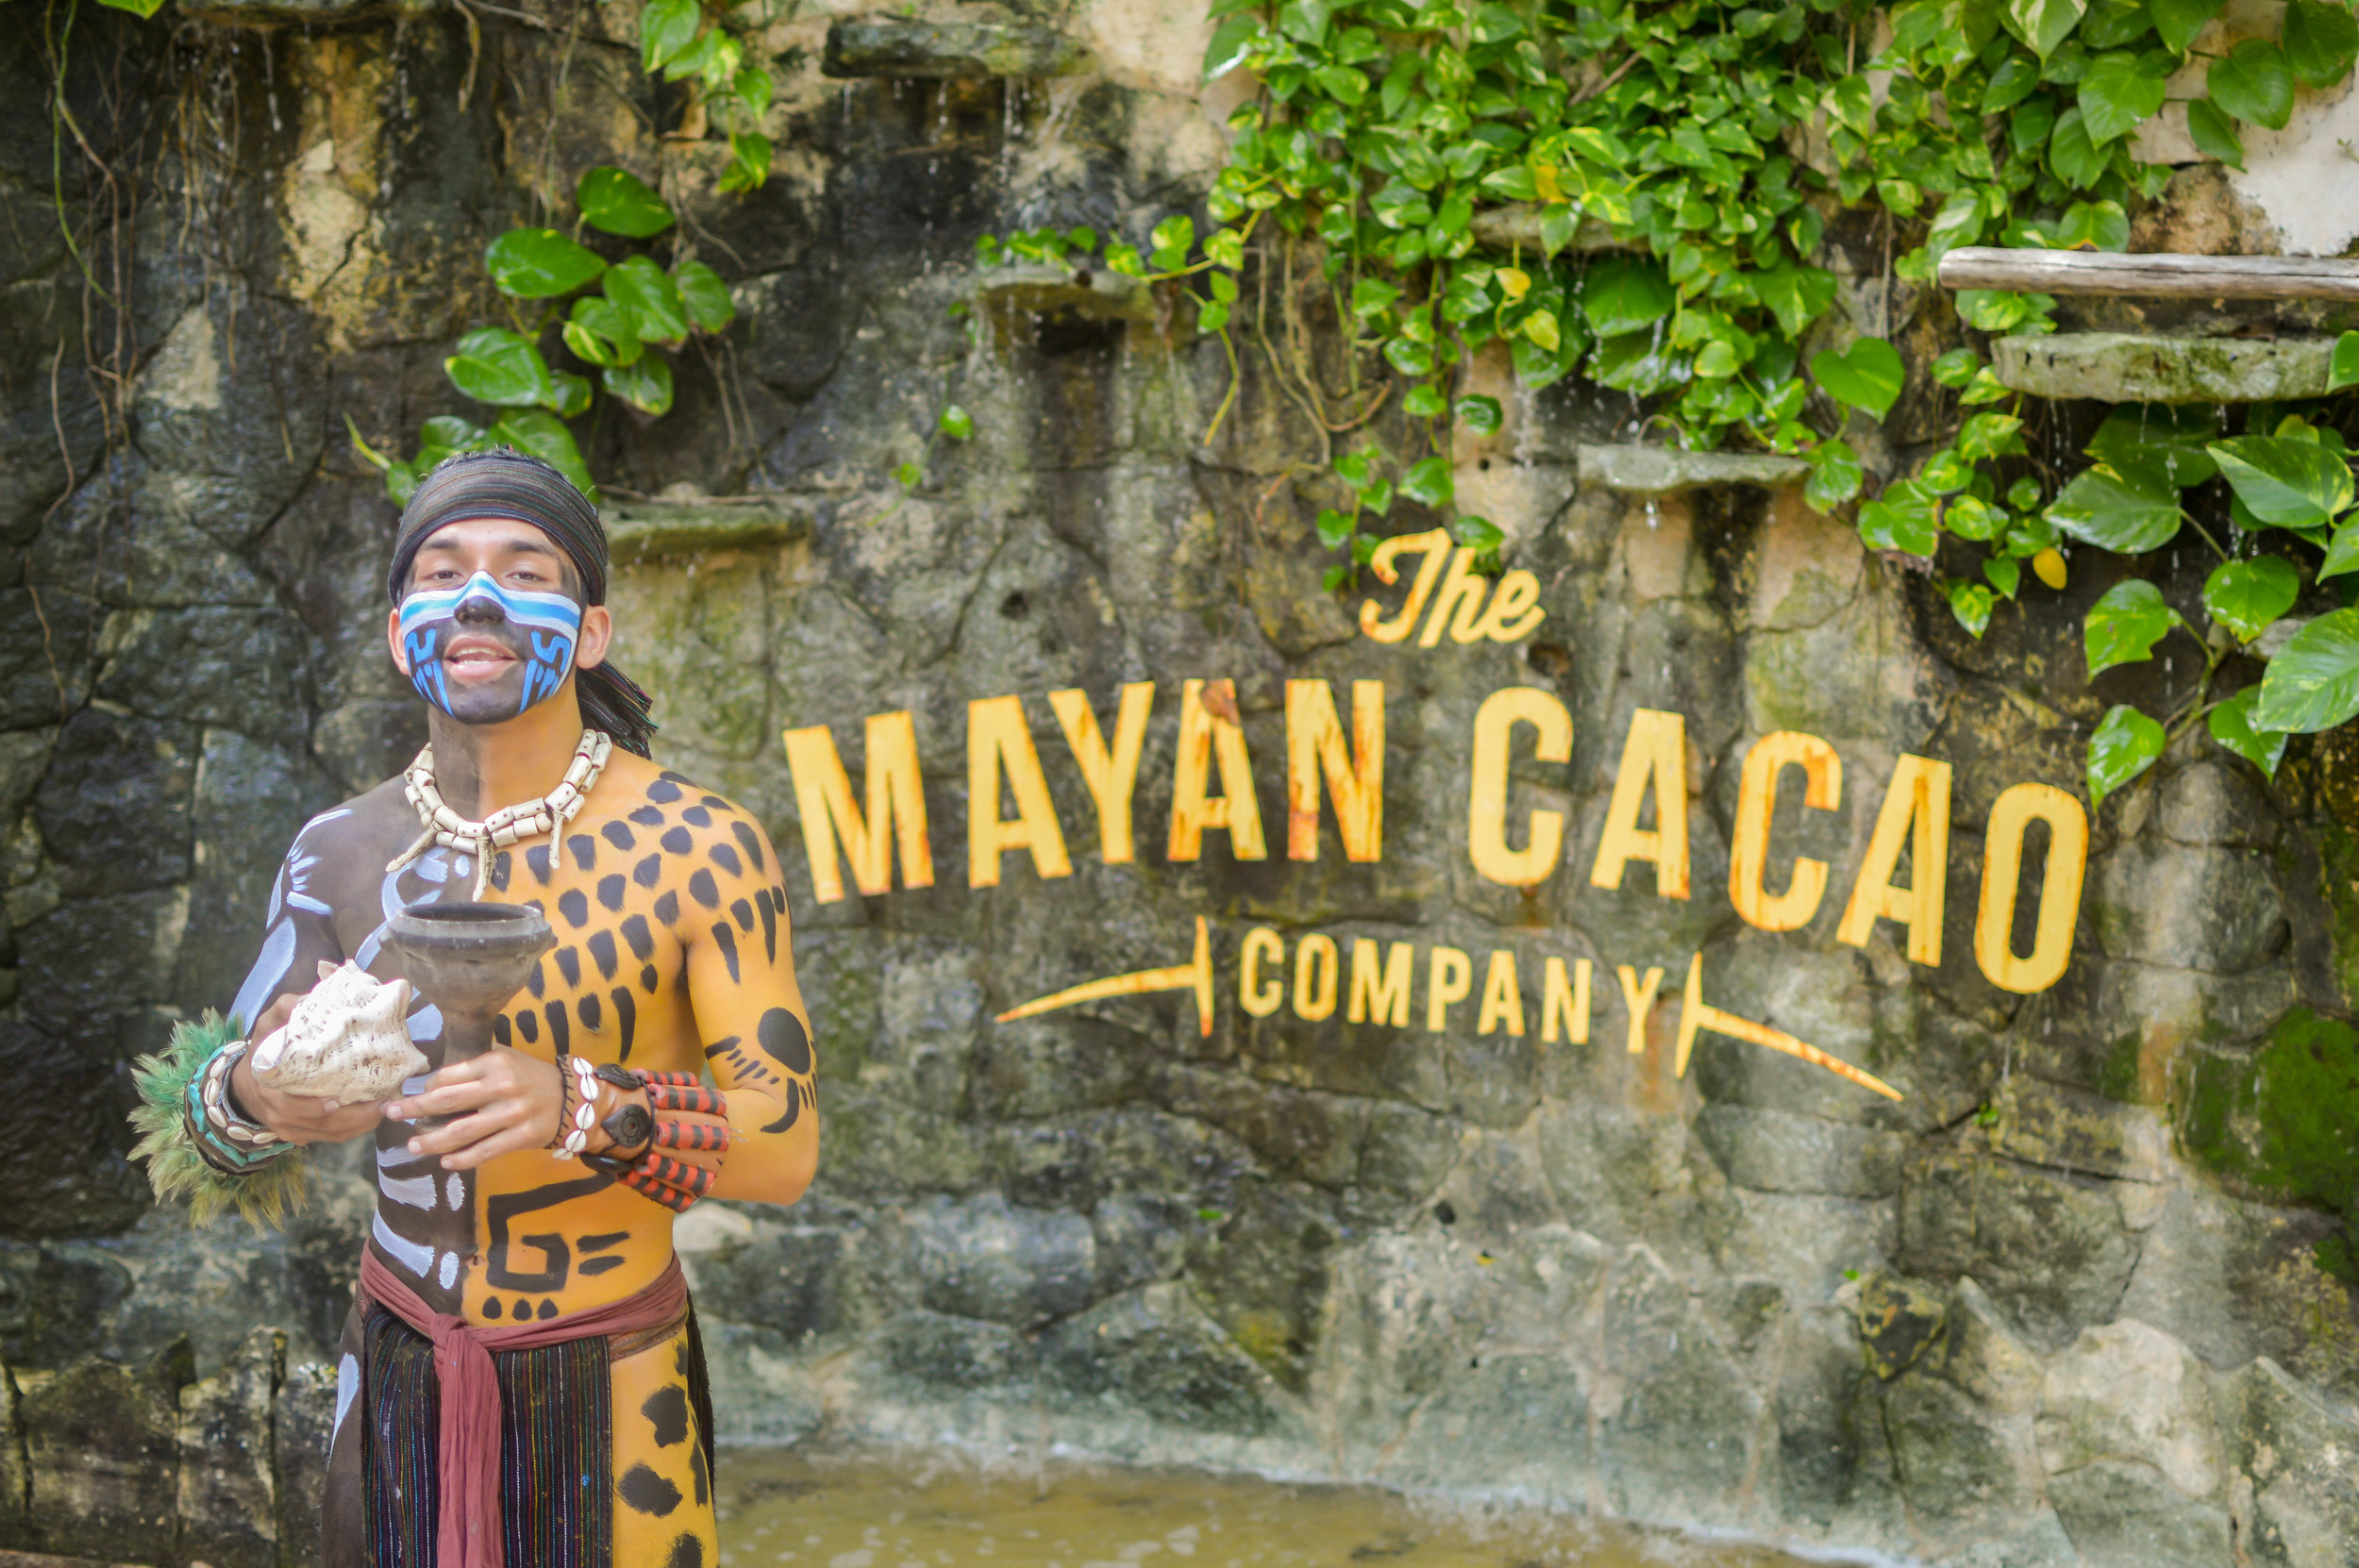 #2: The Mayan Cacao Company - Calling all chocolate lovers!! The tour of The Mayan Cacao Company was an interactive experience that takes you through the history of one of the most popular foods in the world: Chocolate! We learned all about the discovery of cacao and the process the Ancient Mayans used to produce this highly sought after treat. I even had the chance to grind up cacao beans and create my own chocolate using local ingredients! The tour wraps up at a bar that serves the most decadent tropical chocolate drinks; my favorite was the chocolate margarita — Yum!!